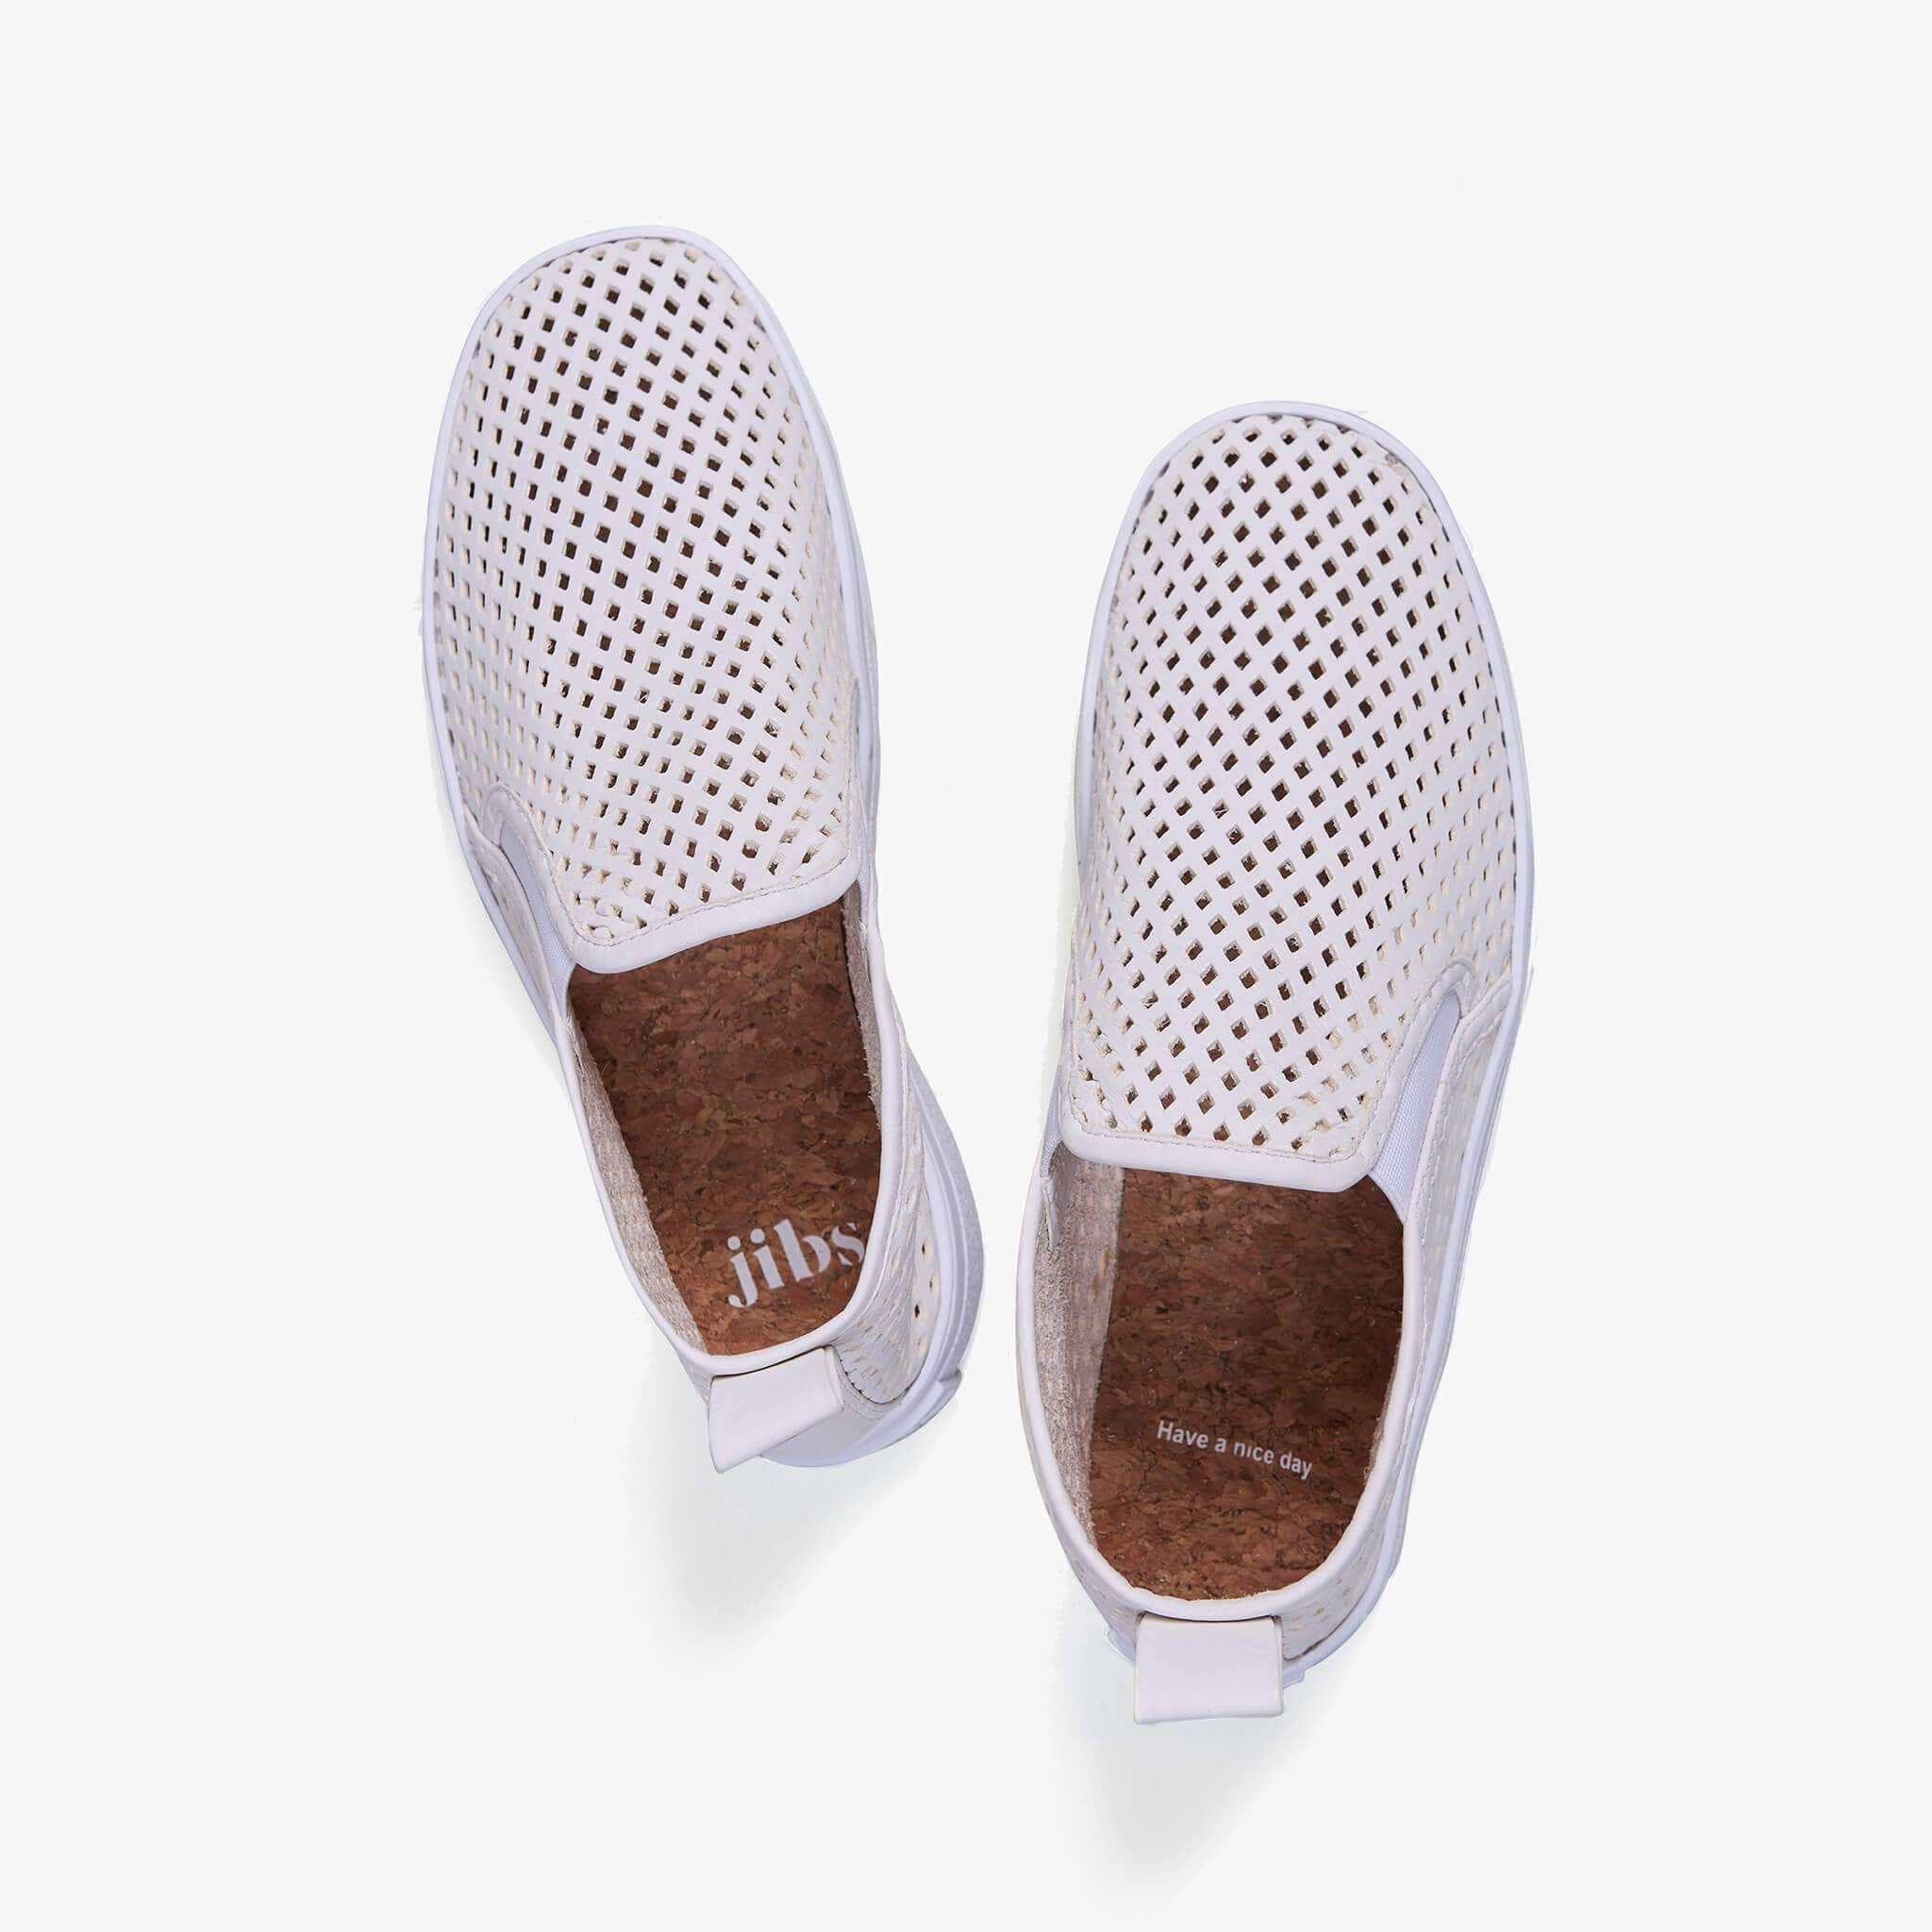 Jibs Mid Rise Soft White Slip On Sneaker Bootie Top Have A Nice Day